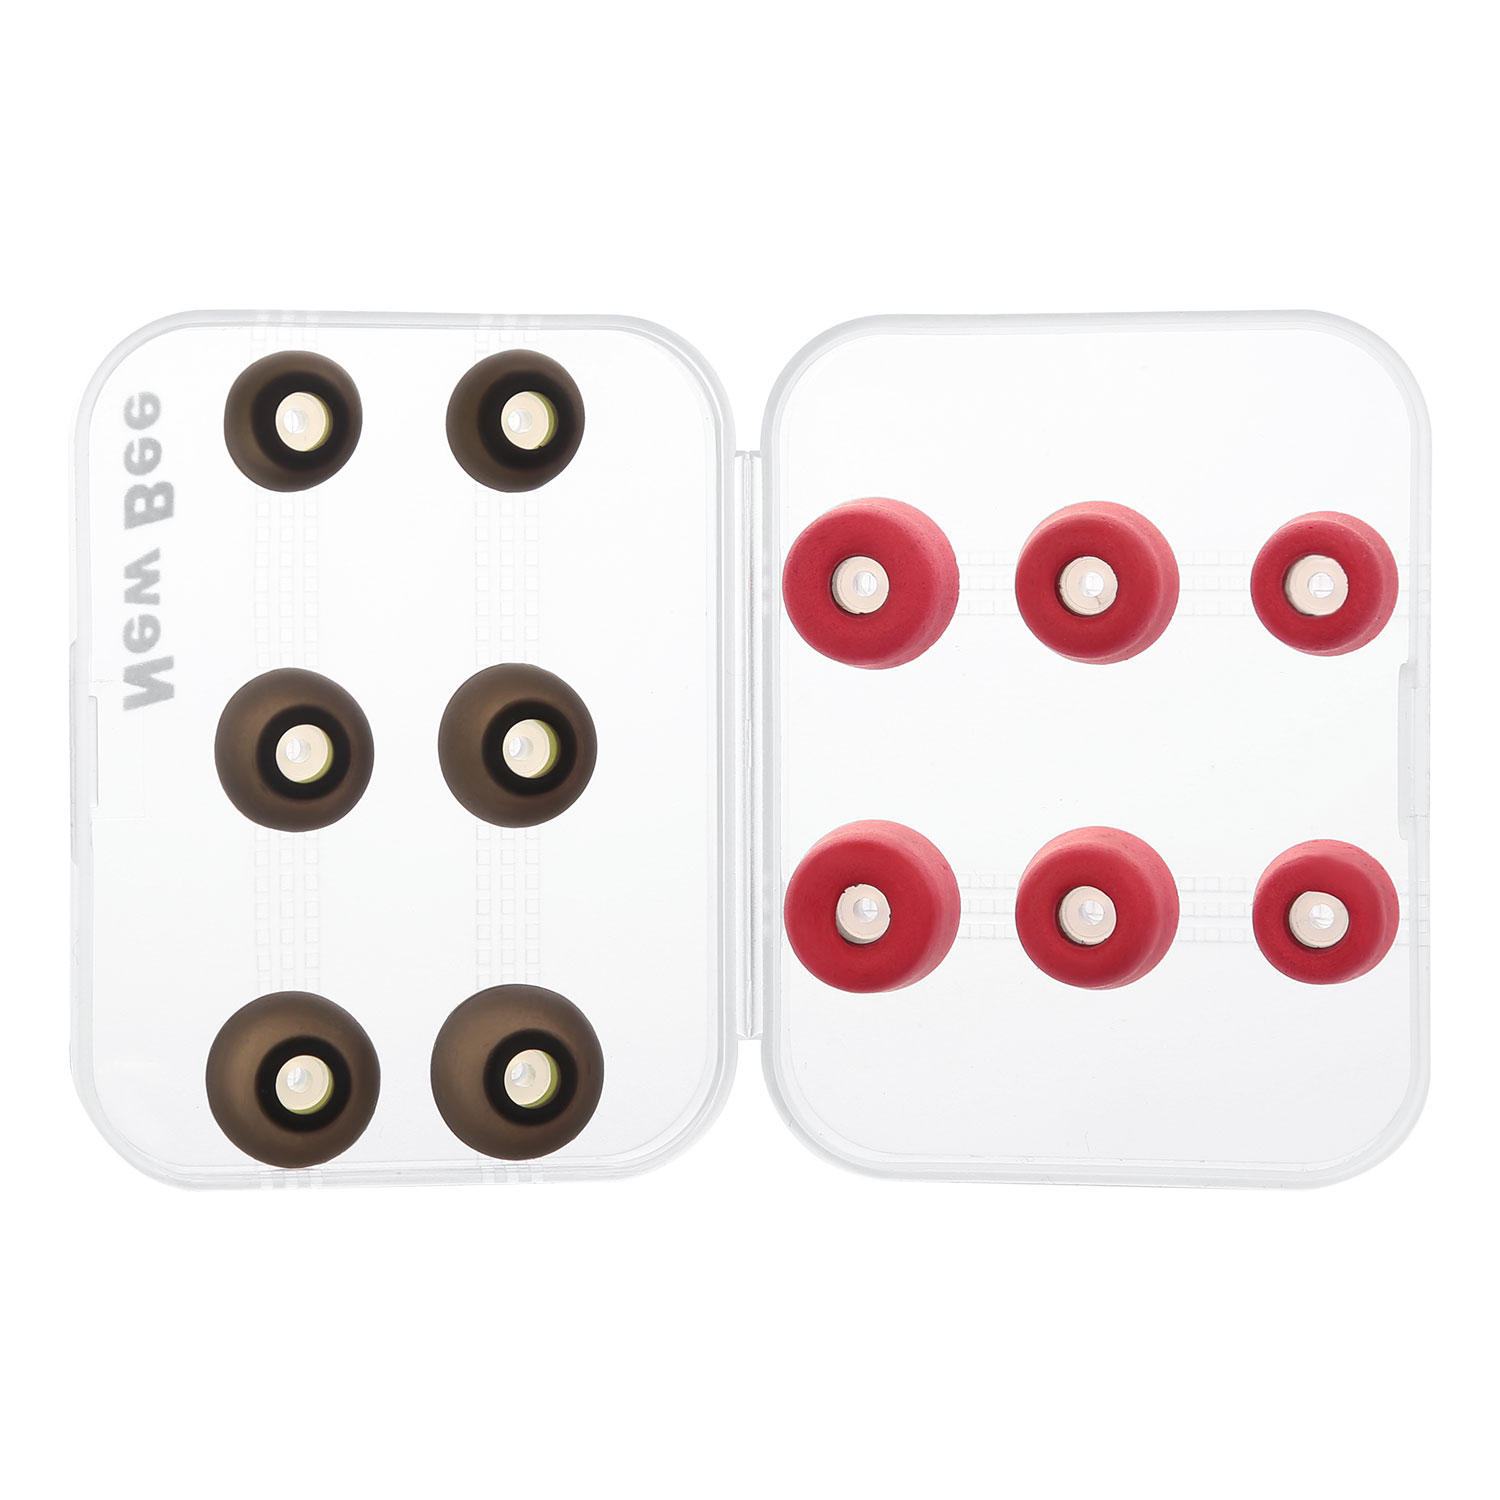 New Bee 3 Pairs of Rebound Memory Foam Tips 3 Pairs of Silicone Earbuds for Earphone Headphone